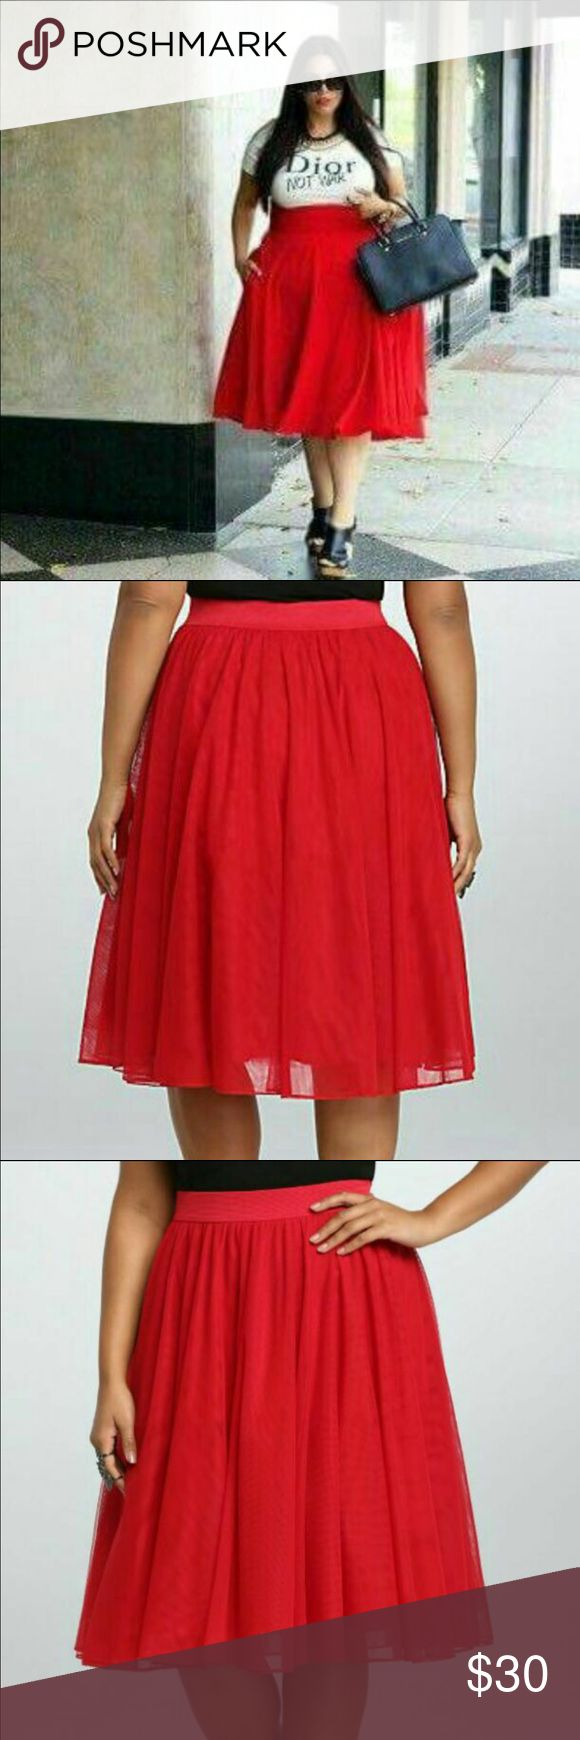 Torrid tulle skirt red Size 2 (18/20) red tulle skirt from torrid! New with tags...didn't work for me. torrid Skirts Midi